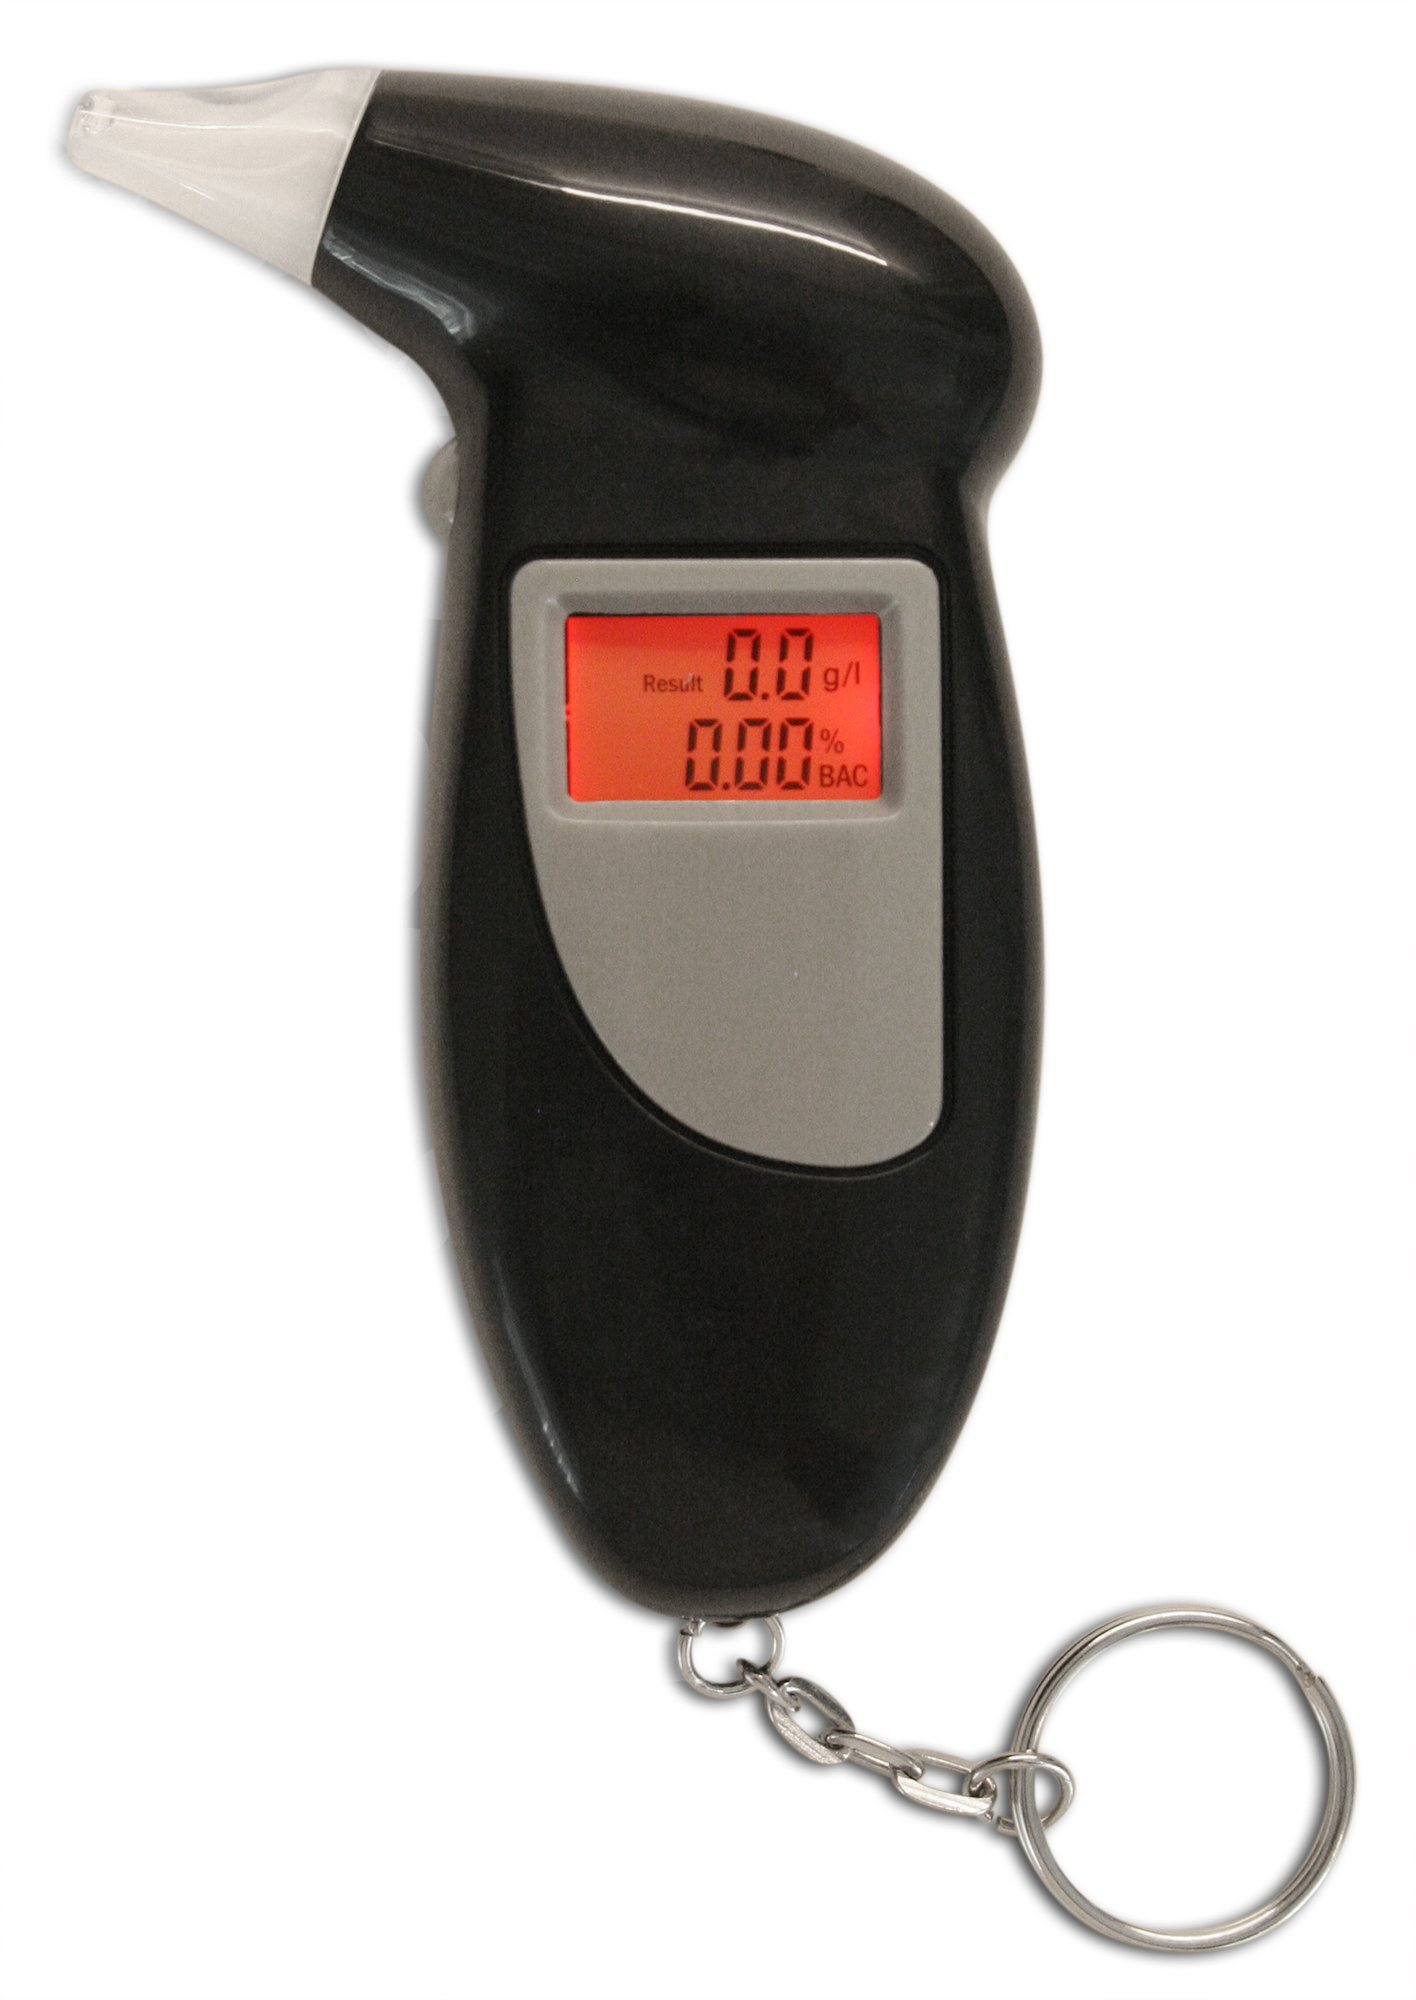 Professional Breathalyzer Keychain by Emerywood: Alcohol Tester Red Backlit Breath Analyzer Portable High-Precision Breathalyzer with LCD Display and Replacement Mouthpieces by Emerywood (Image #2)